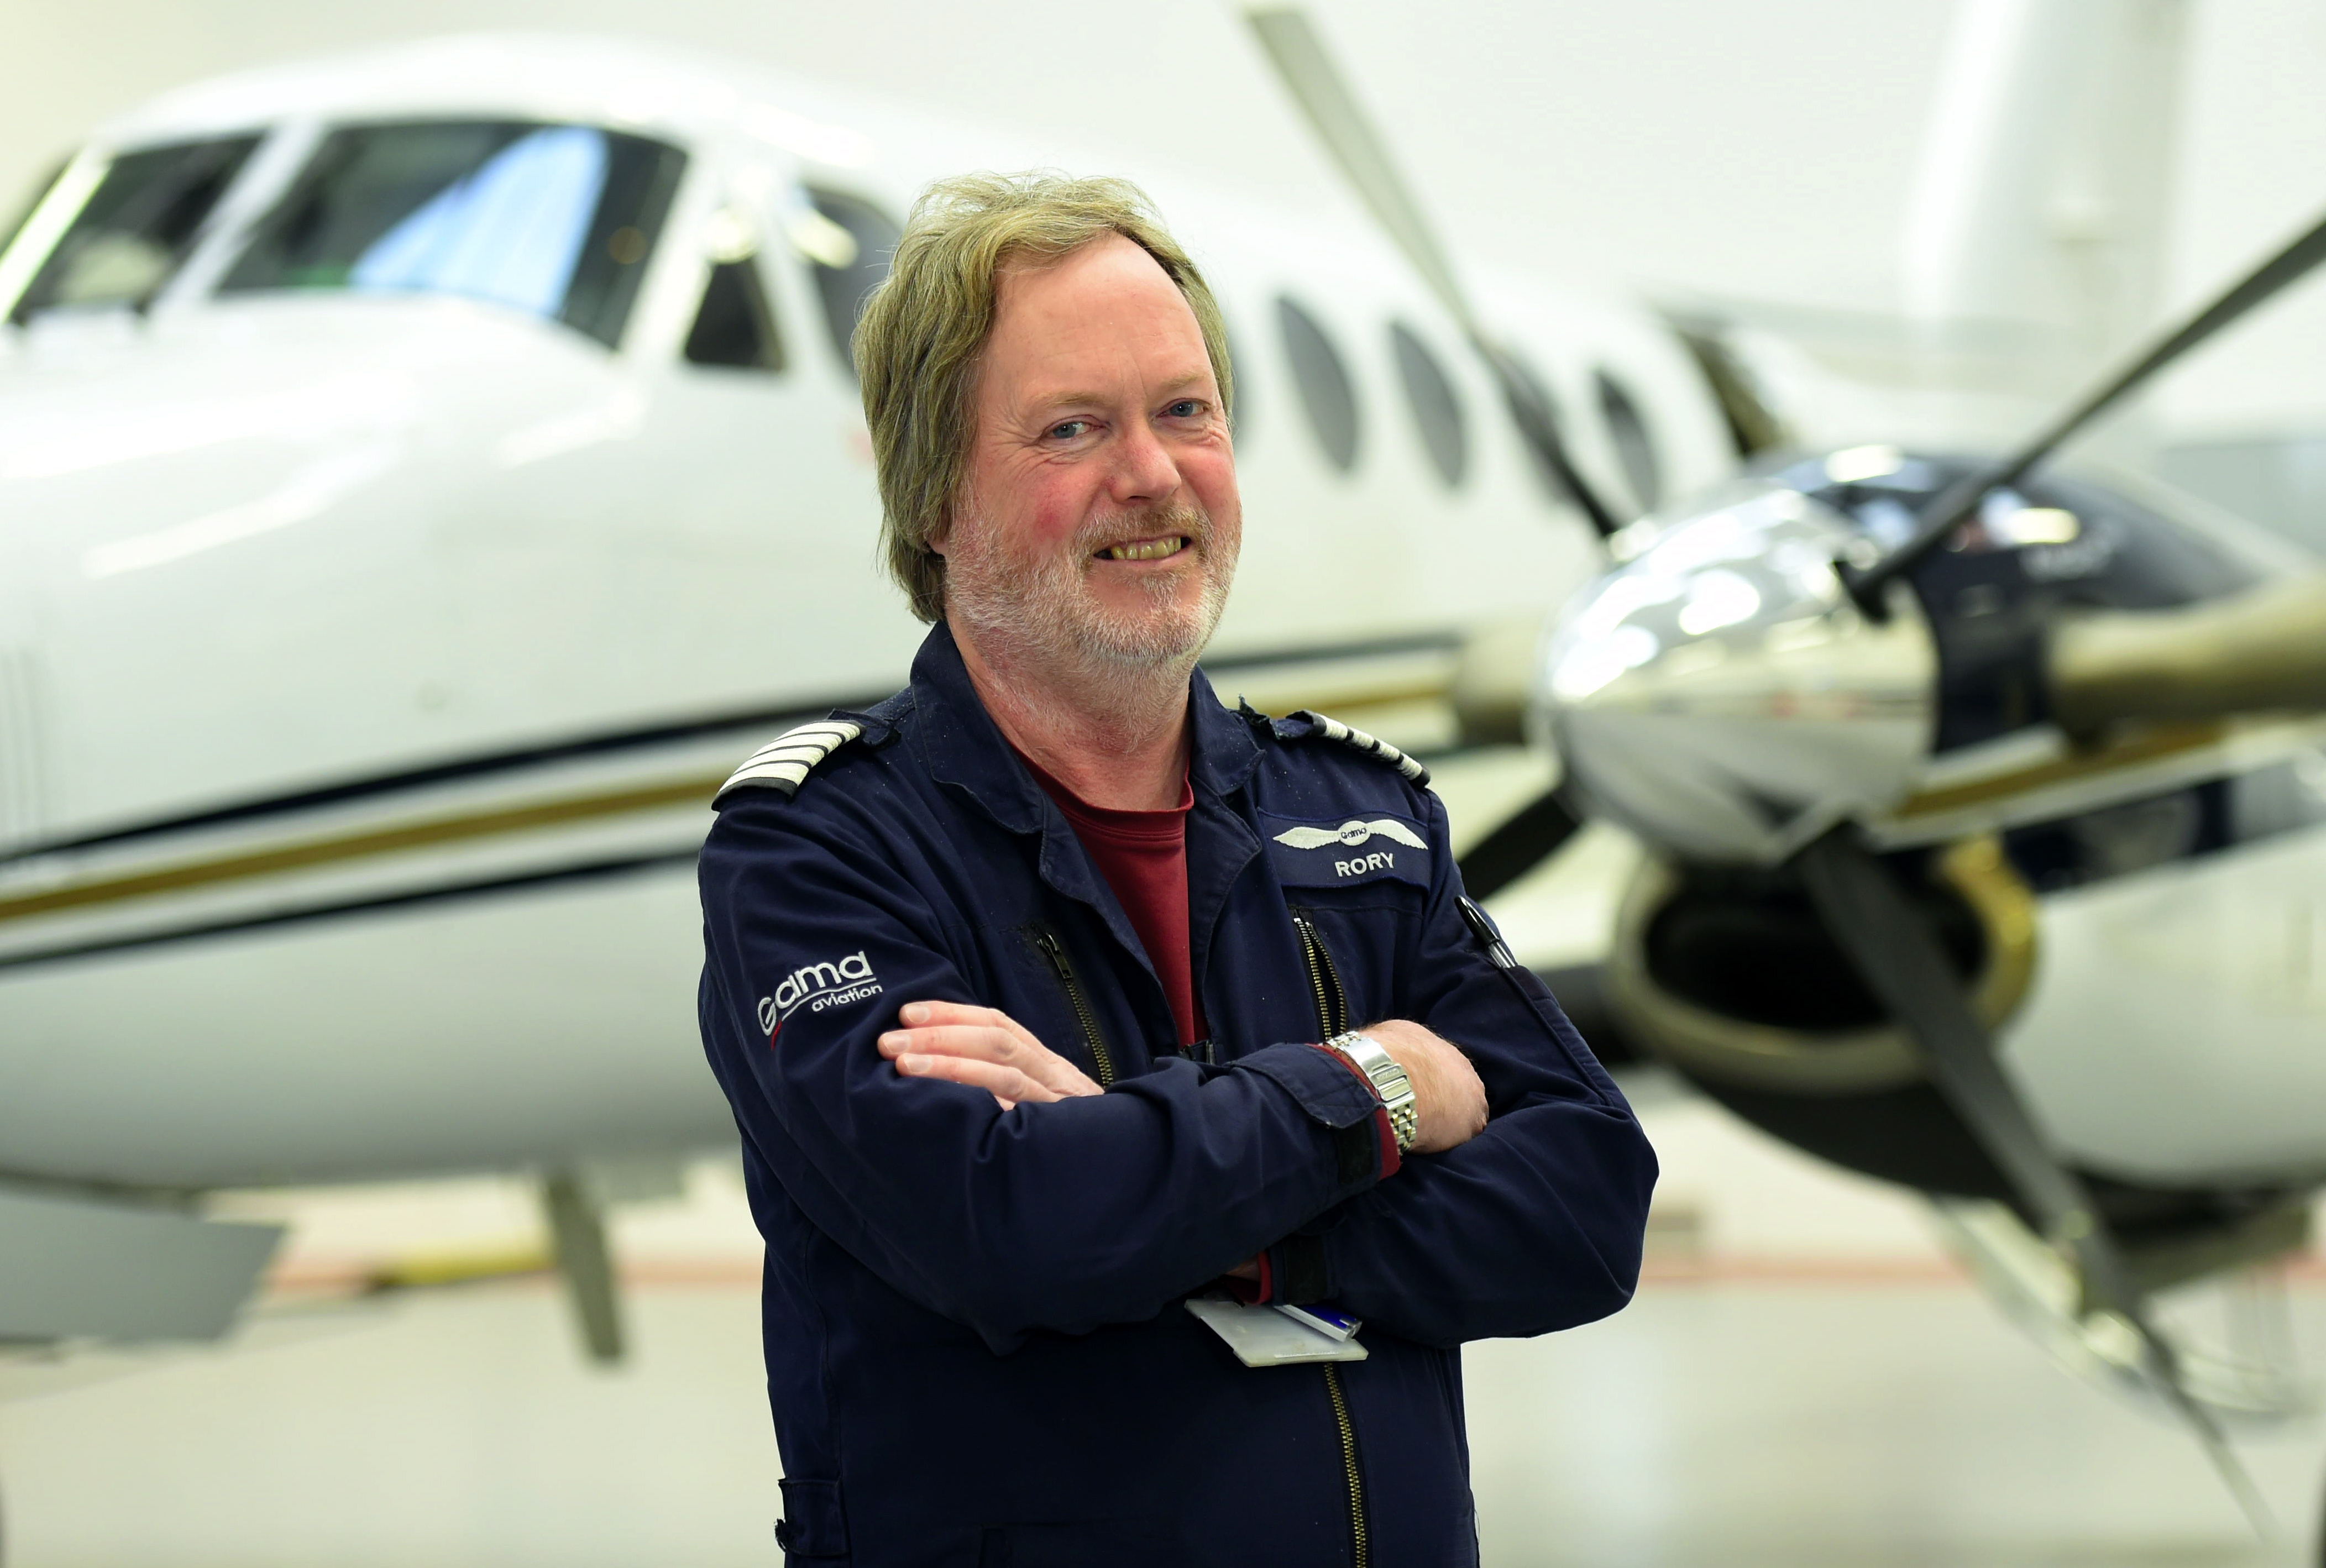 Rory Macdonald has been an Air Ambulance pilot for 25 years.